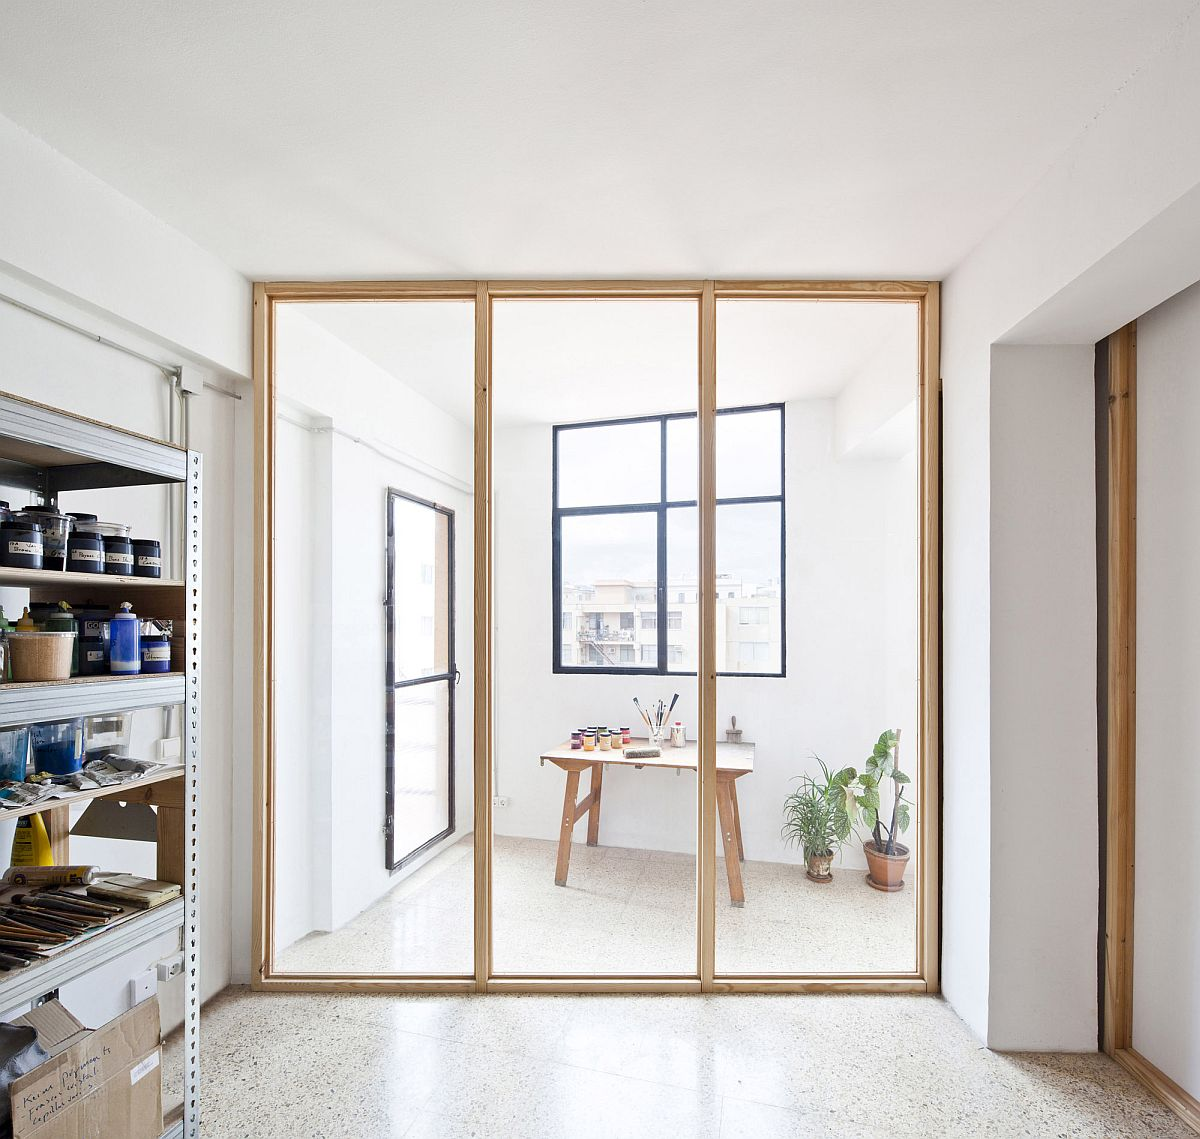 Simple-and-elegant-wooden-frame-along-with-glass-walls-also-helos-with-thermal-insulation-of-the-main-office-70319